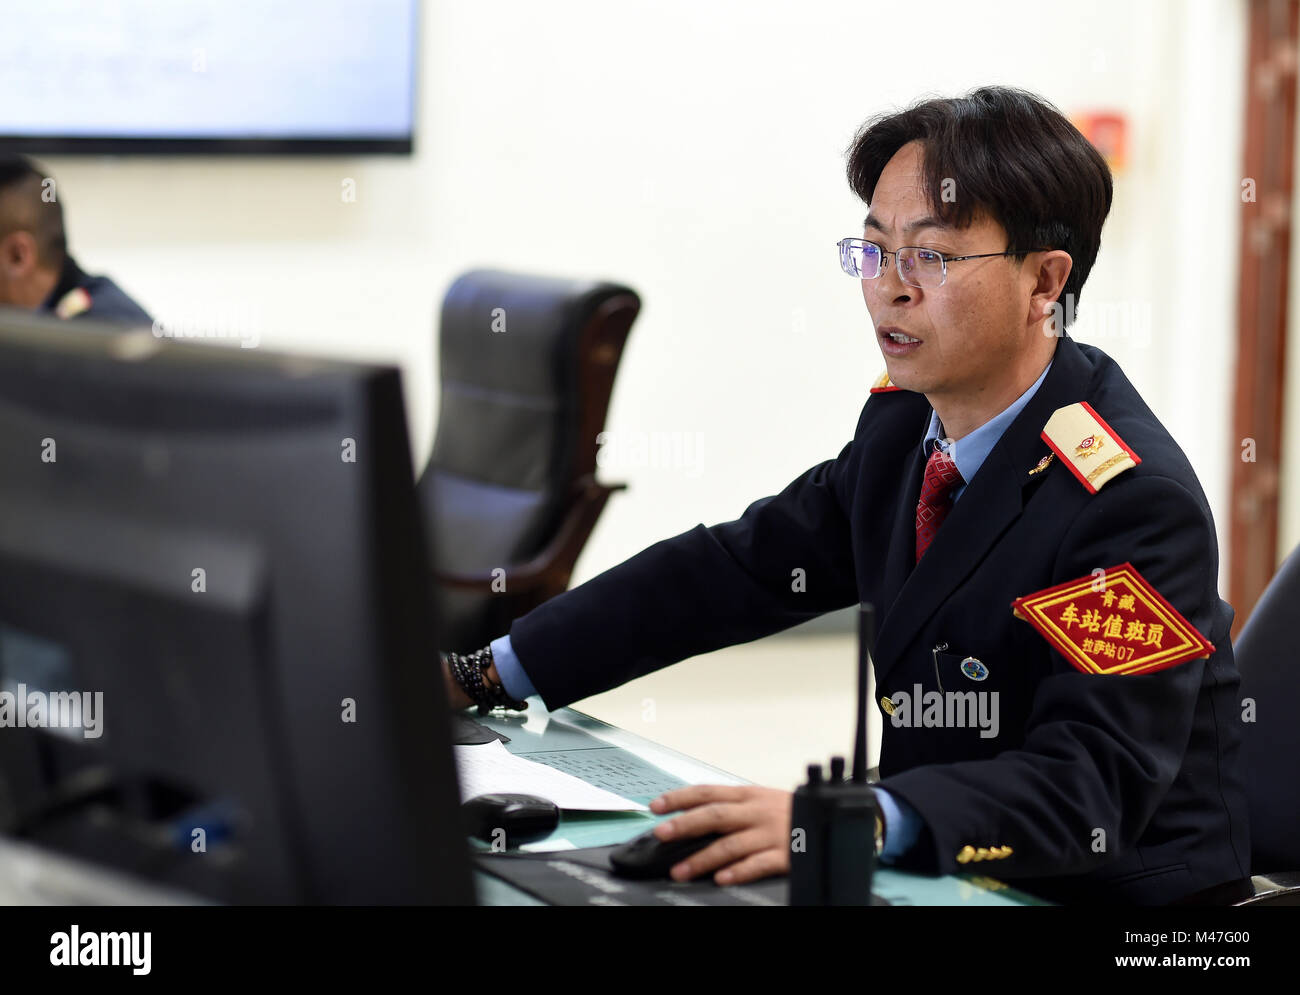 Lhasa, China's Tibet Autonomous Region. 15th Feb, 2018. A staff member works at Lhasa Railway Station in Lhasa, - Stock Image